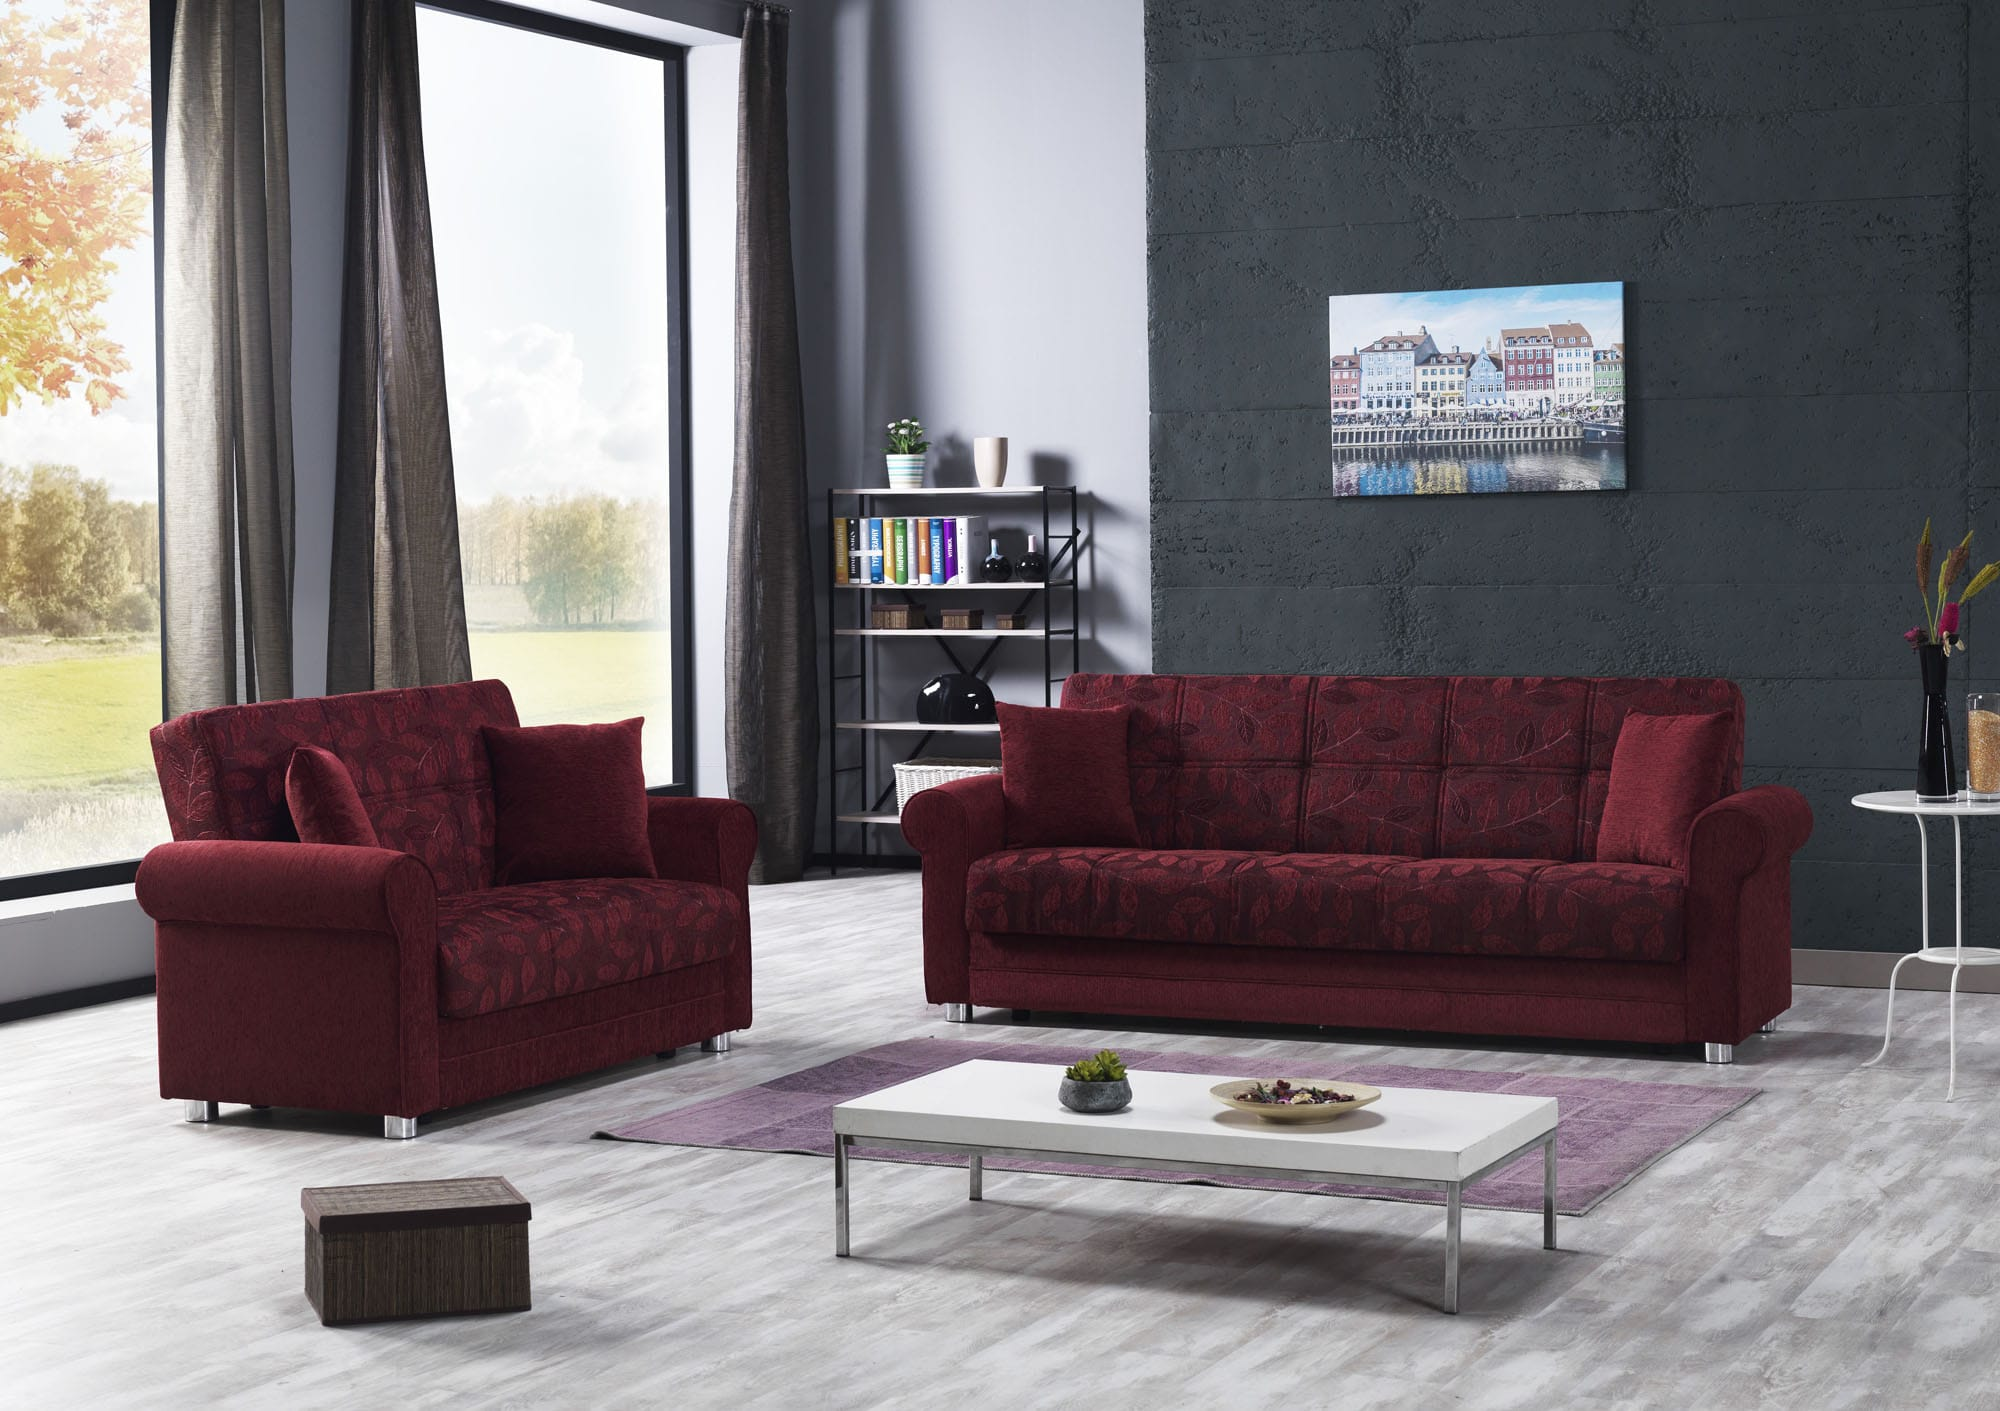 Image of: Rio Burgundy Sofa Bed By Casamode